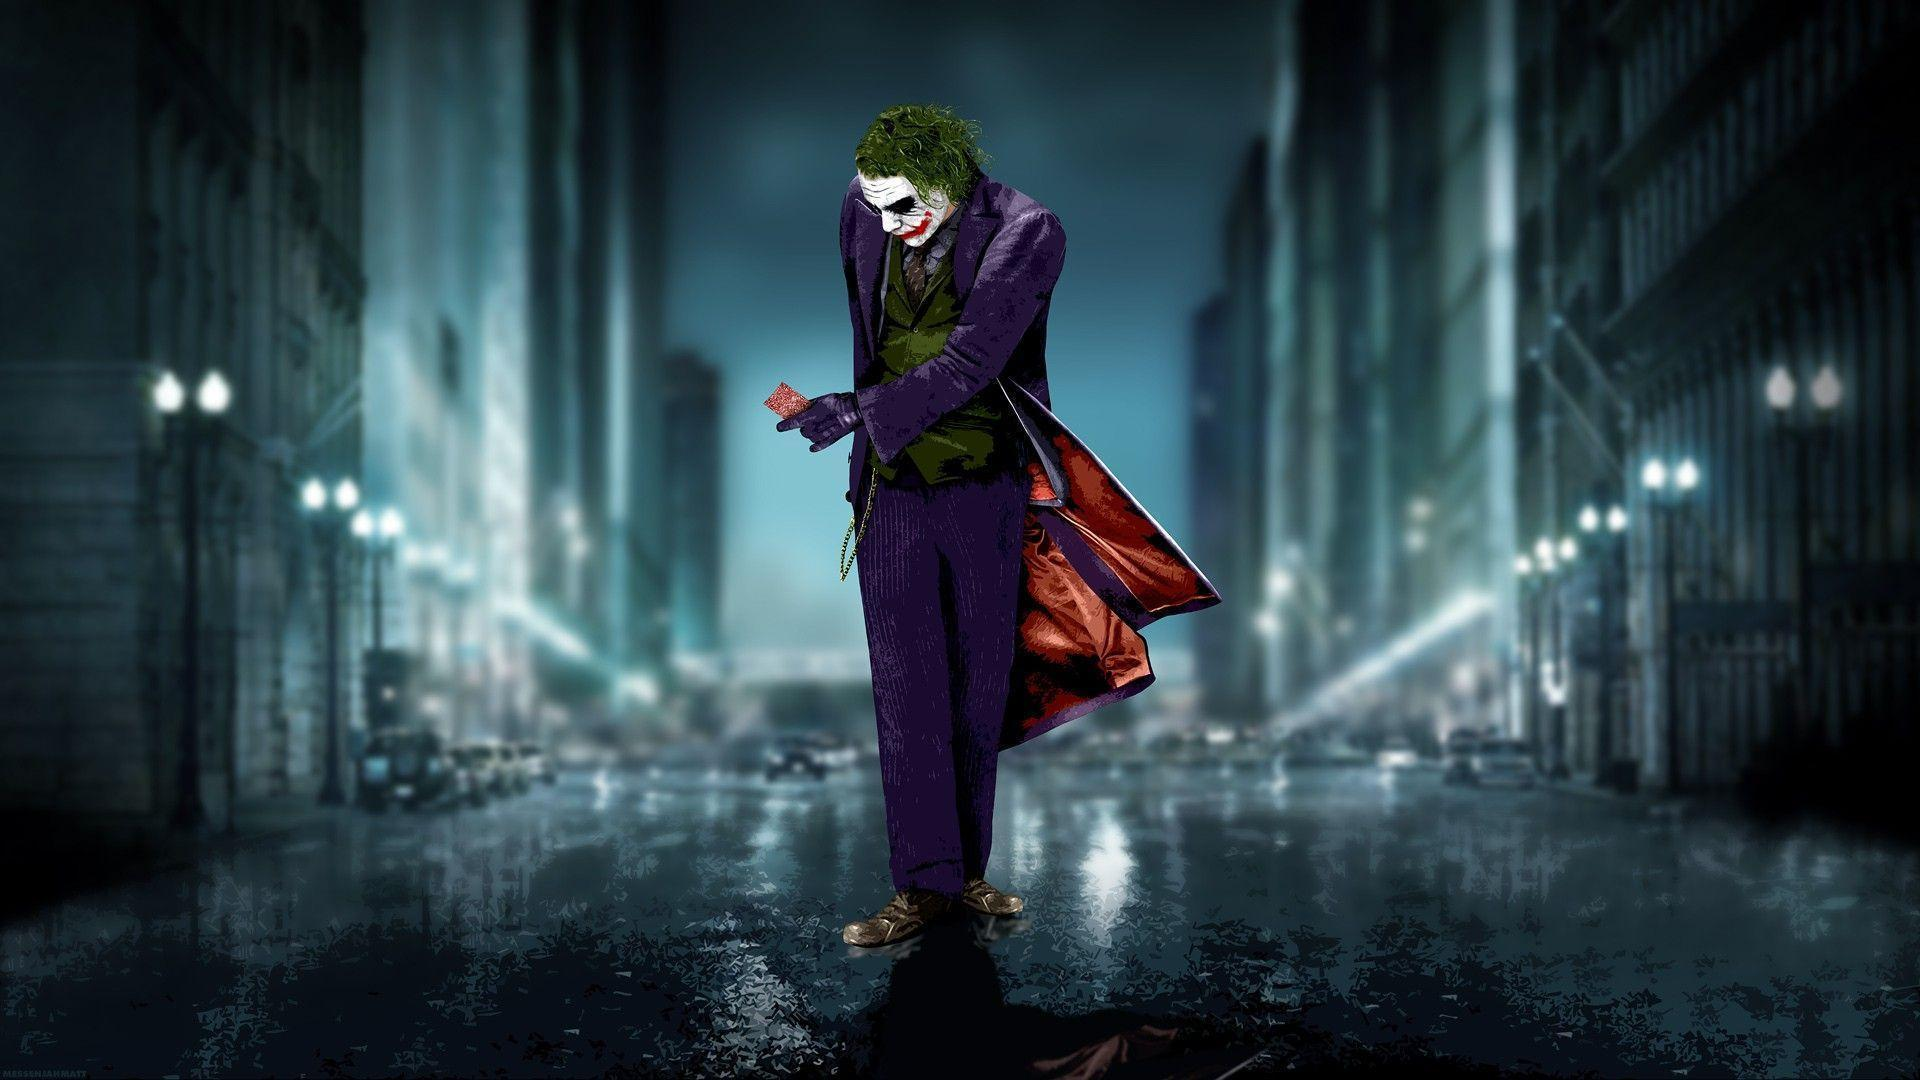 The Joker Desktop Backgrounds - Wallpaper Cave